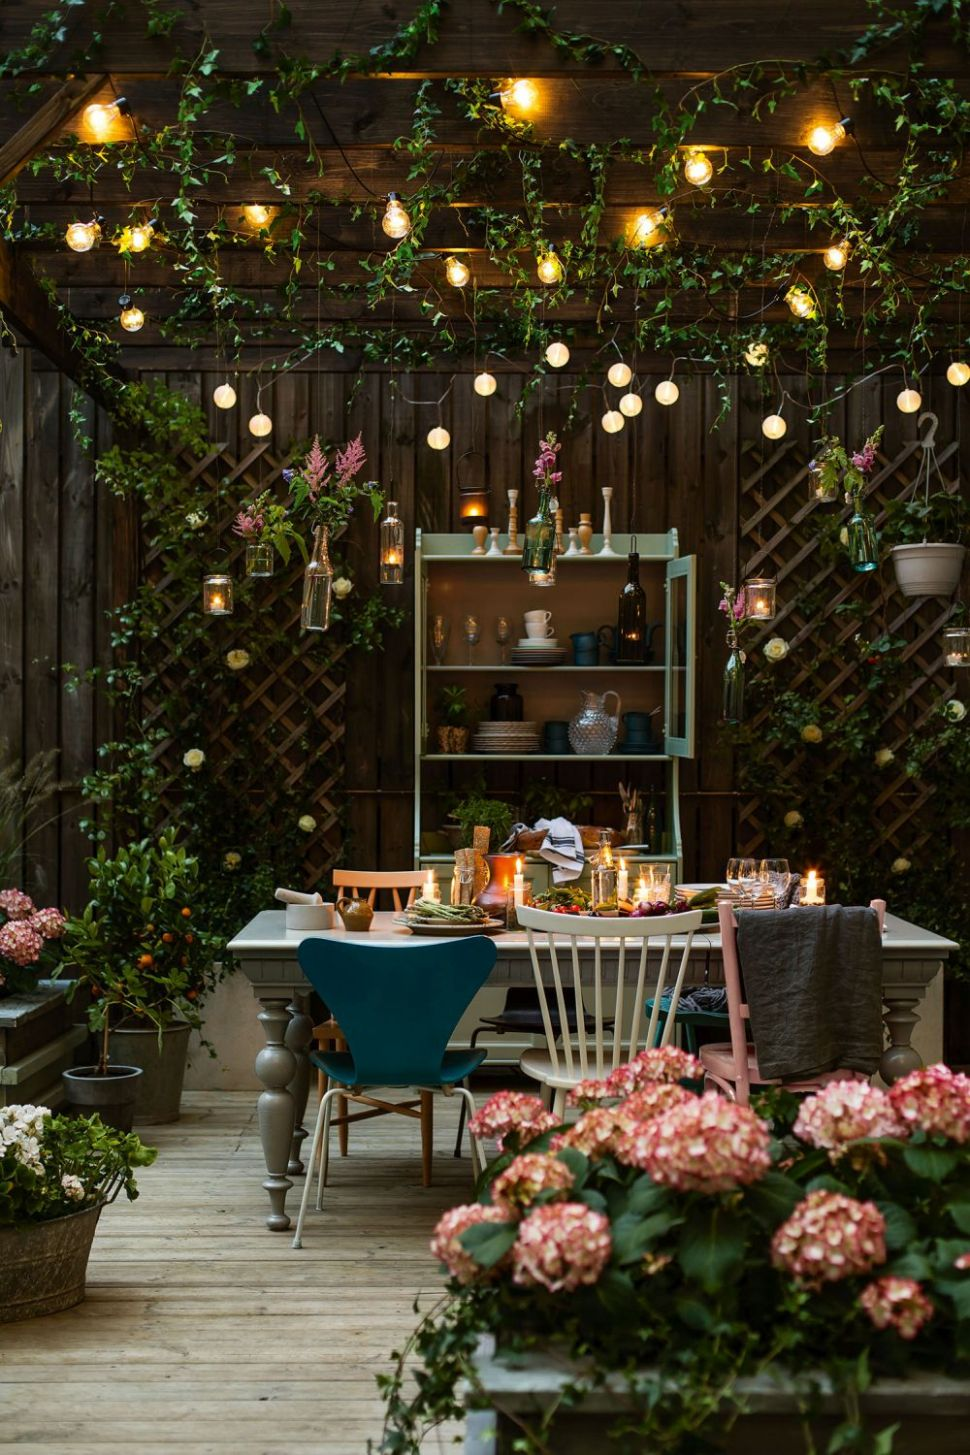 10 Cool Backyard Lighting Ideas For Magical Decors - backyard ideas lights